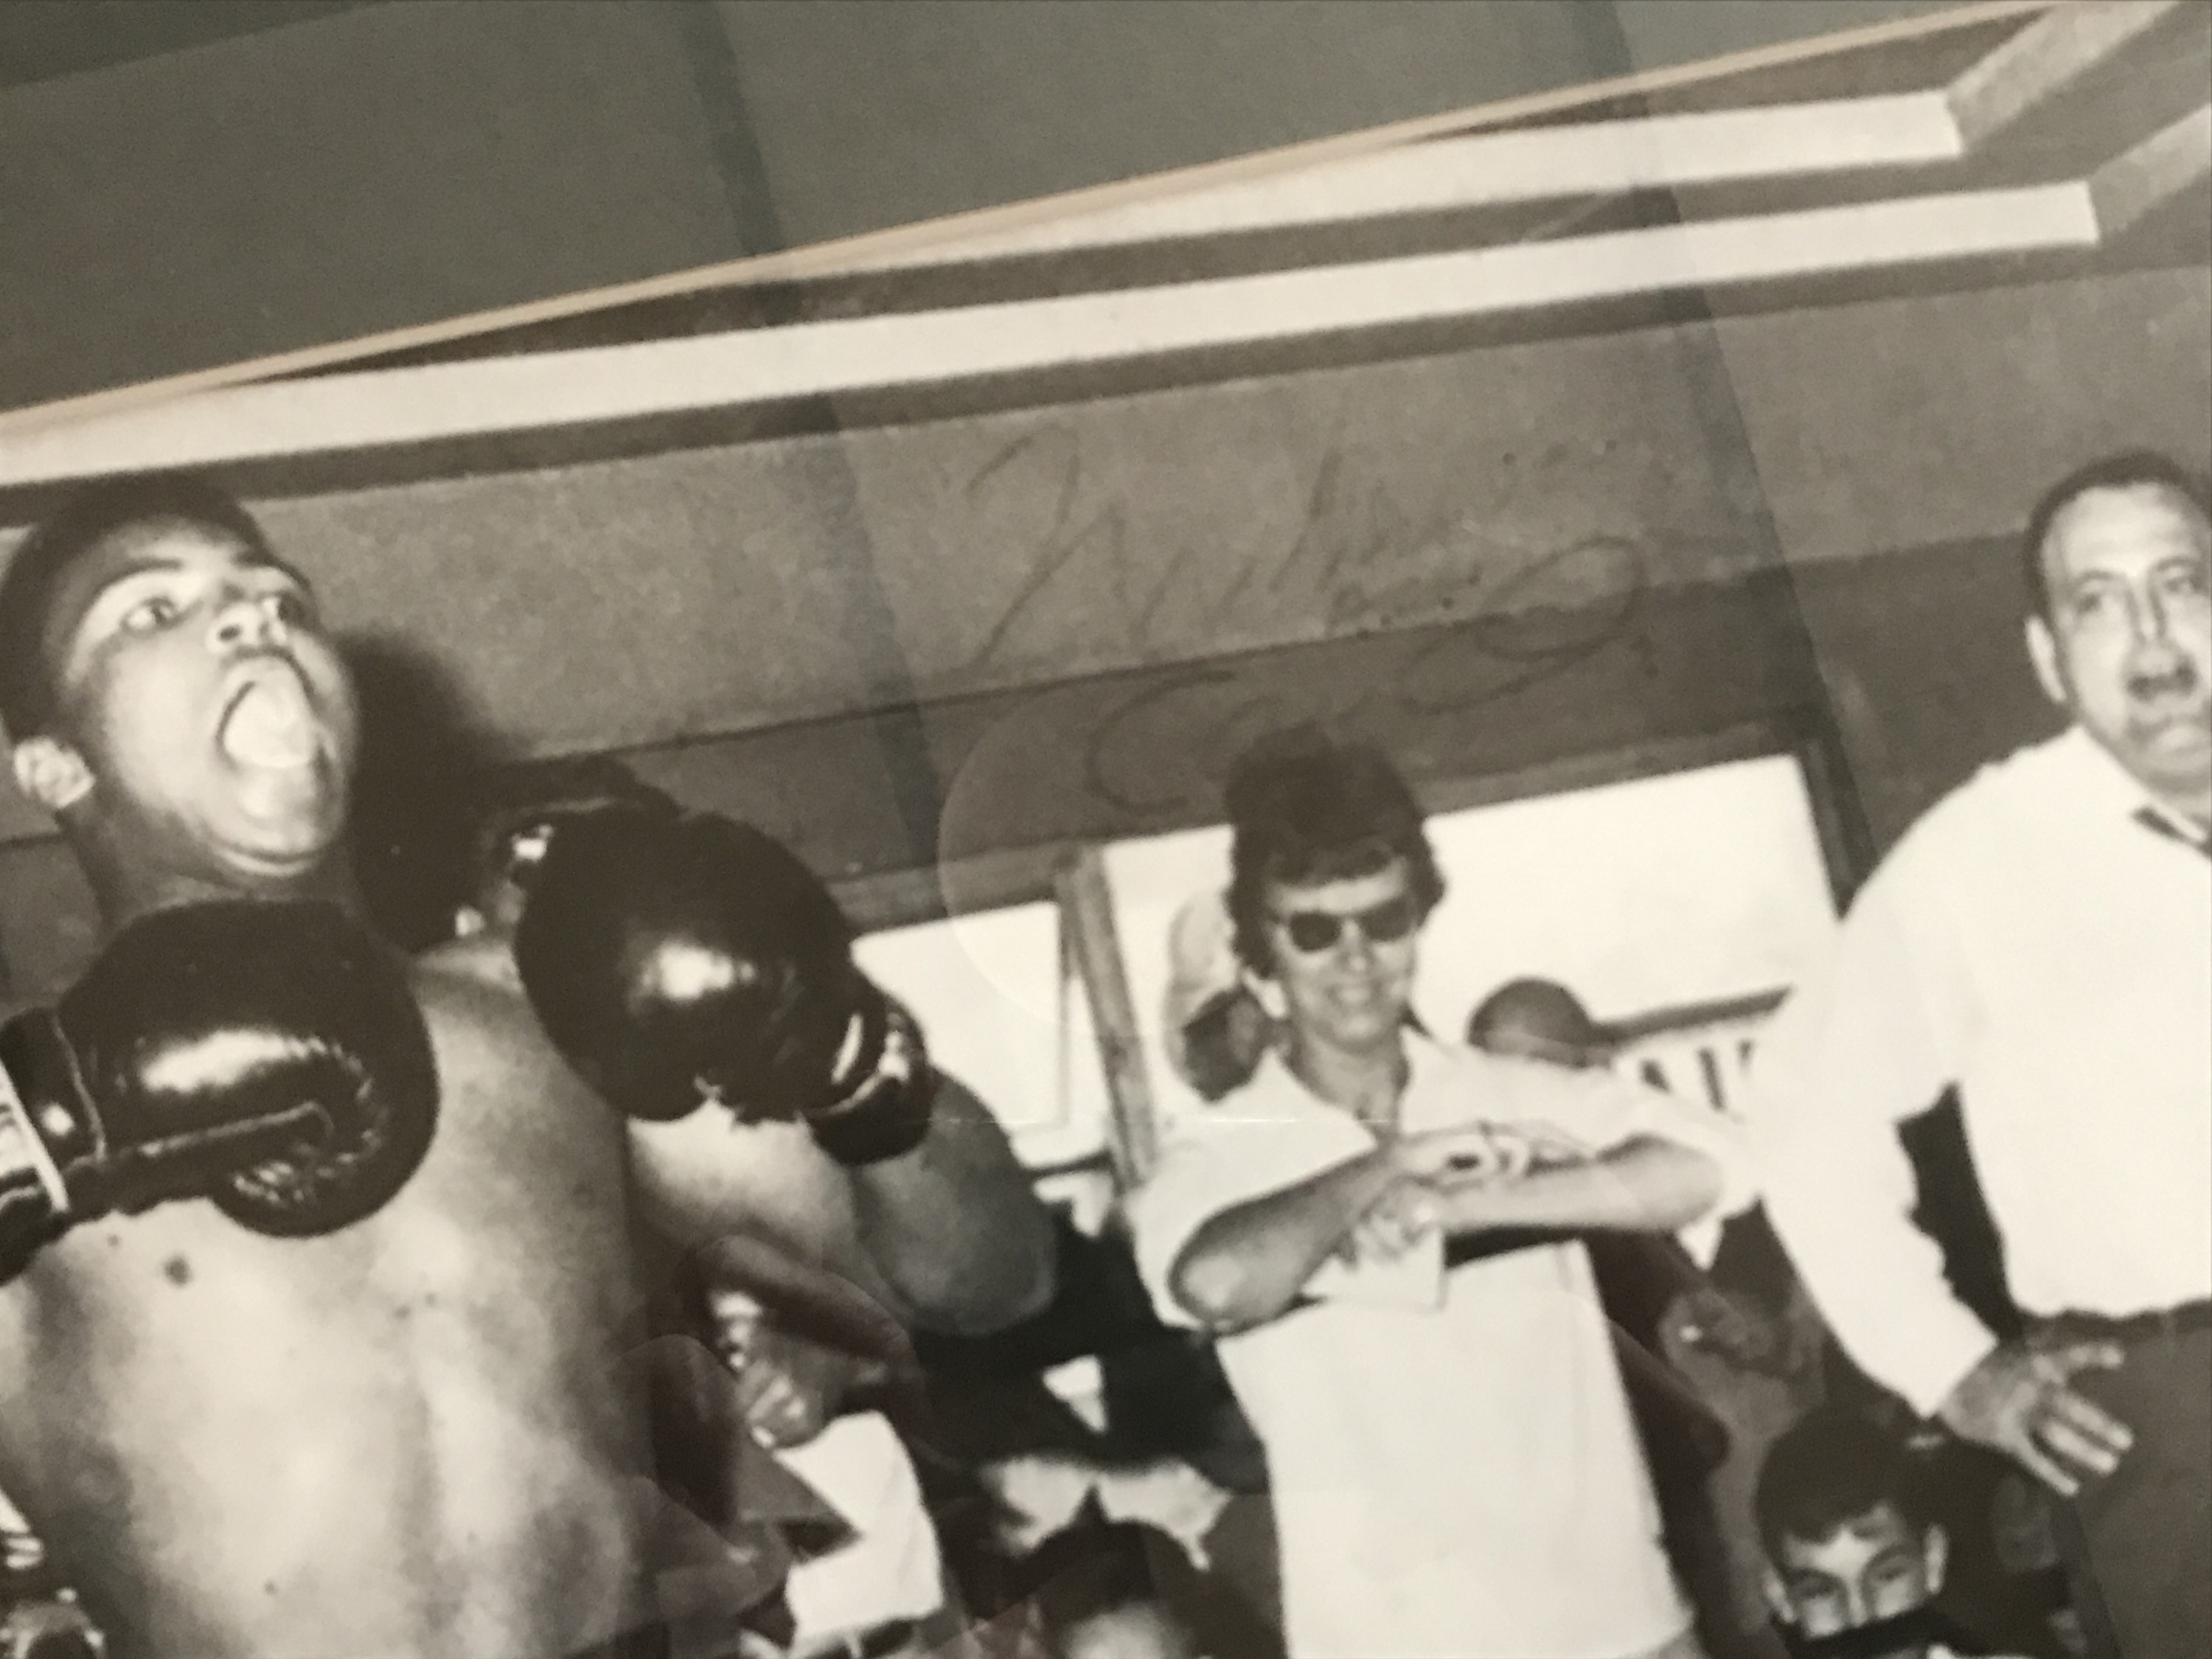 Lot 46 - [Autograph / Muhammad Ali / The Beatles] Signed candid photographic print depicting Cassius Clay (